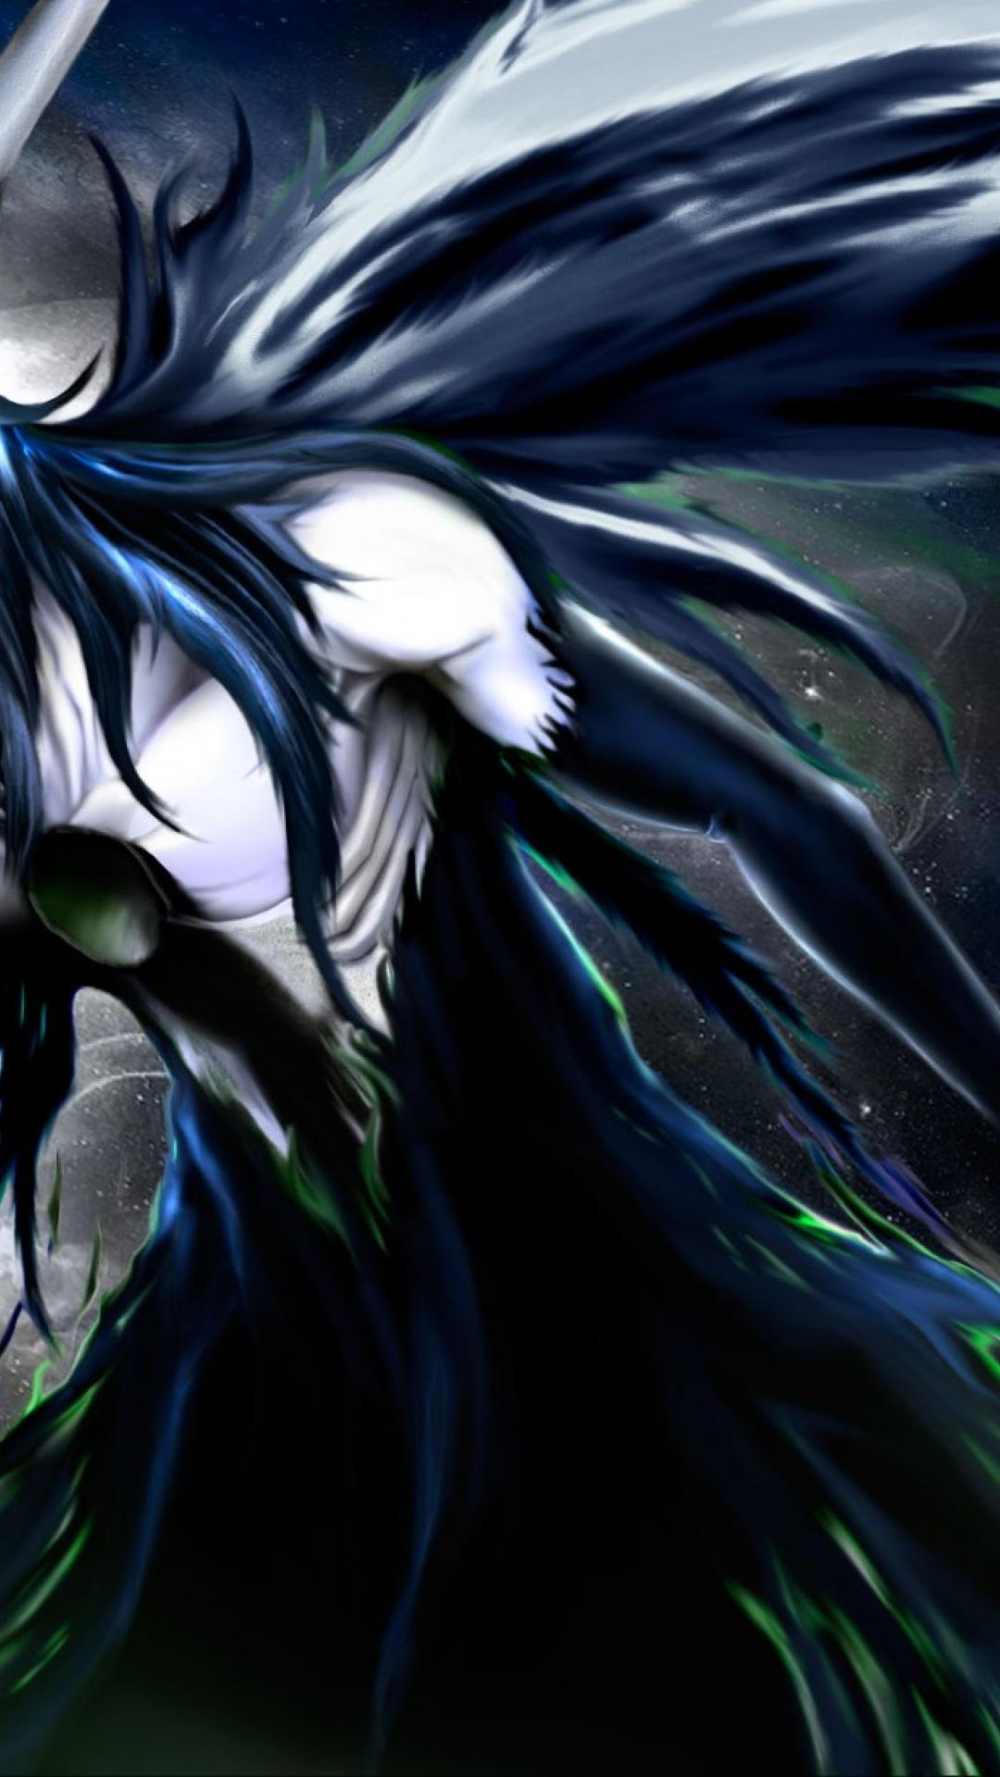 Anime Wallpaper High Resolution » Hupages » Download